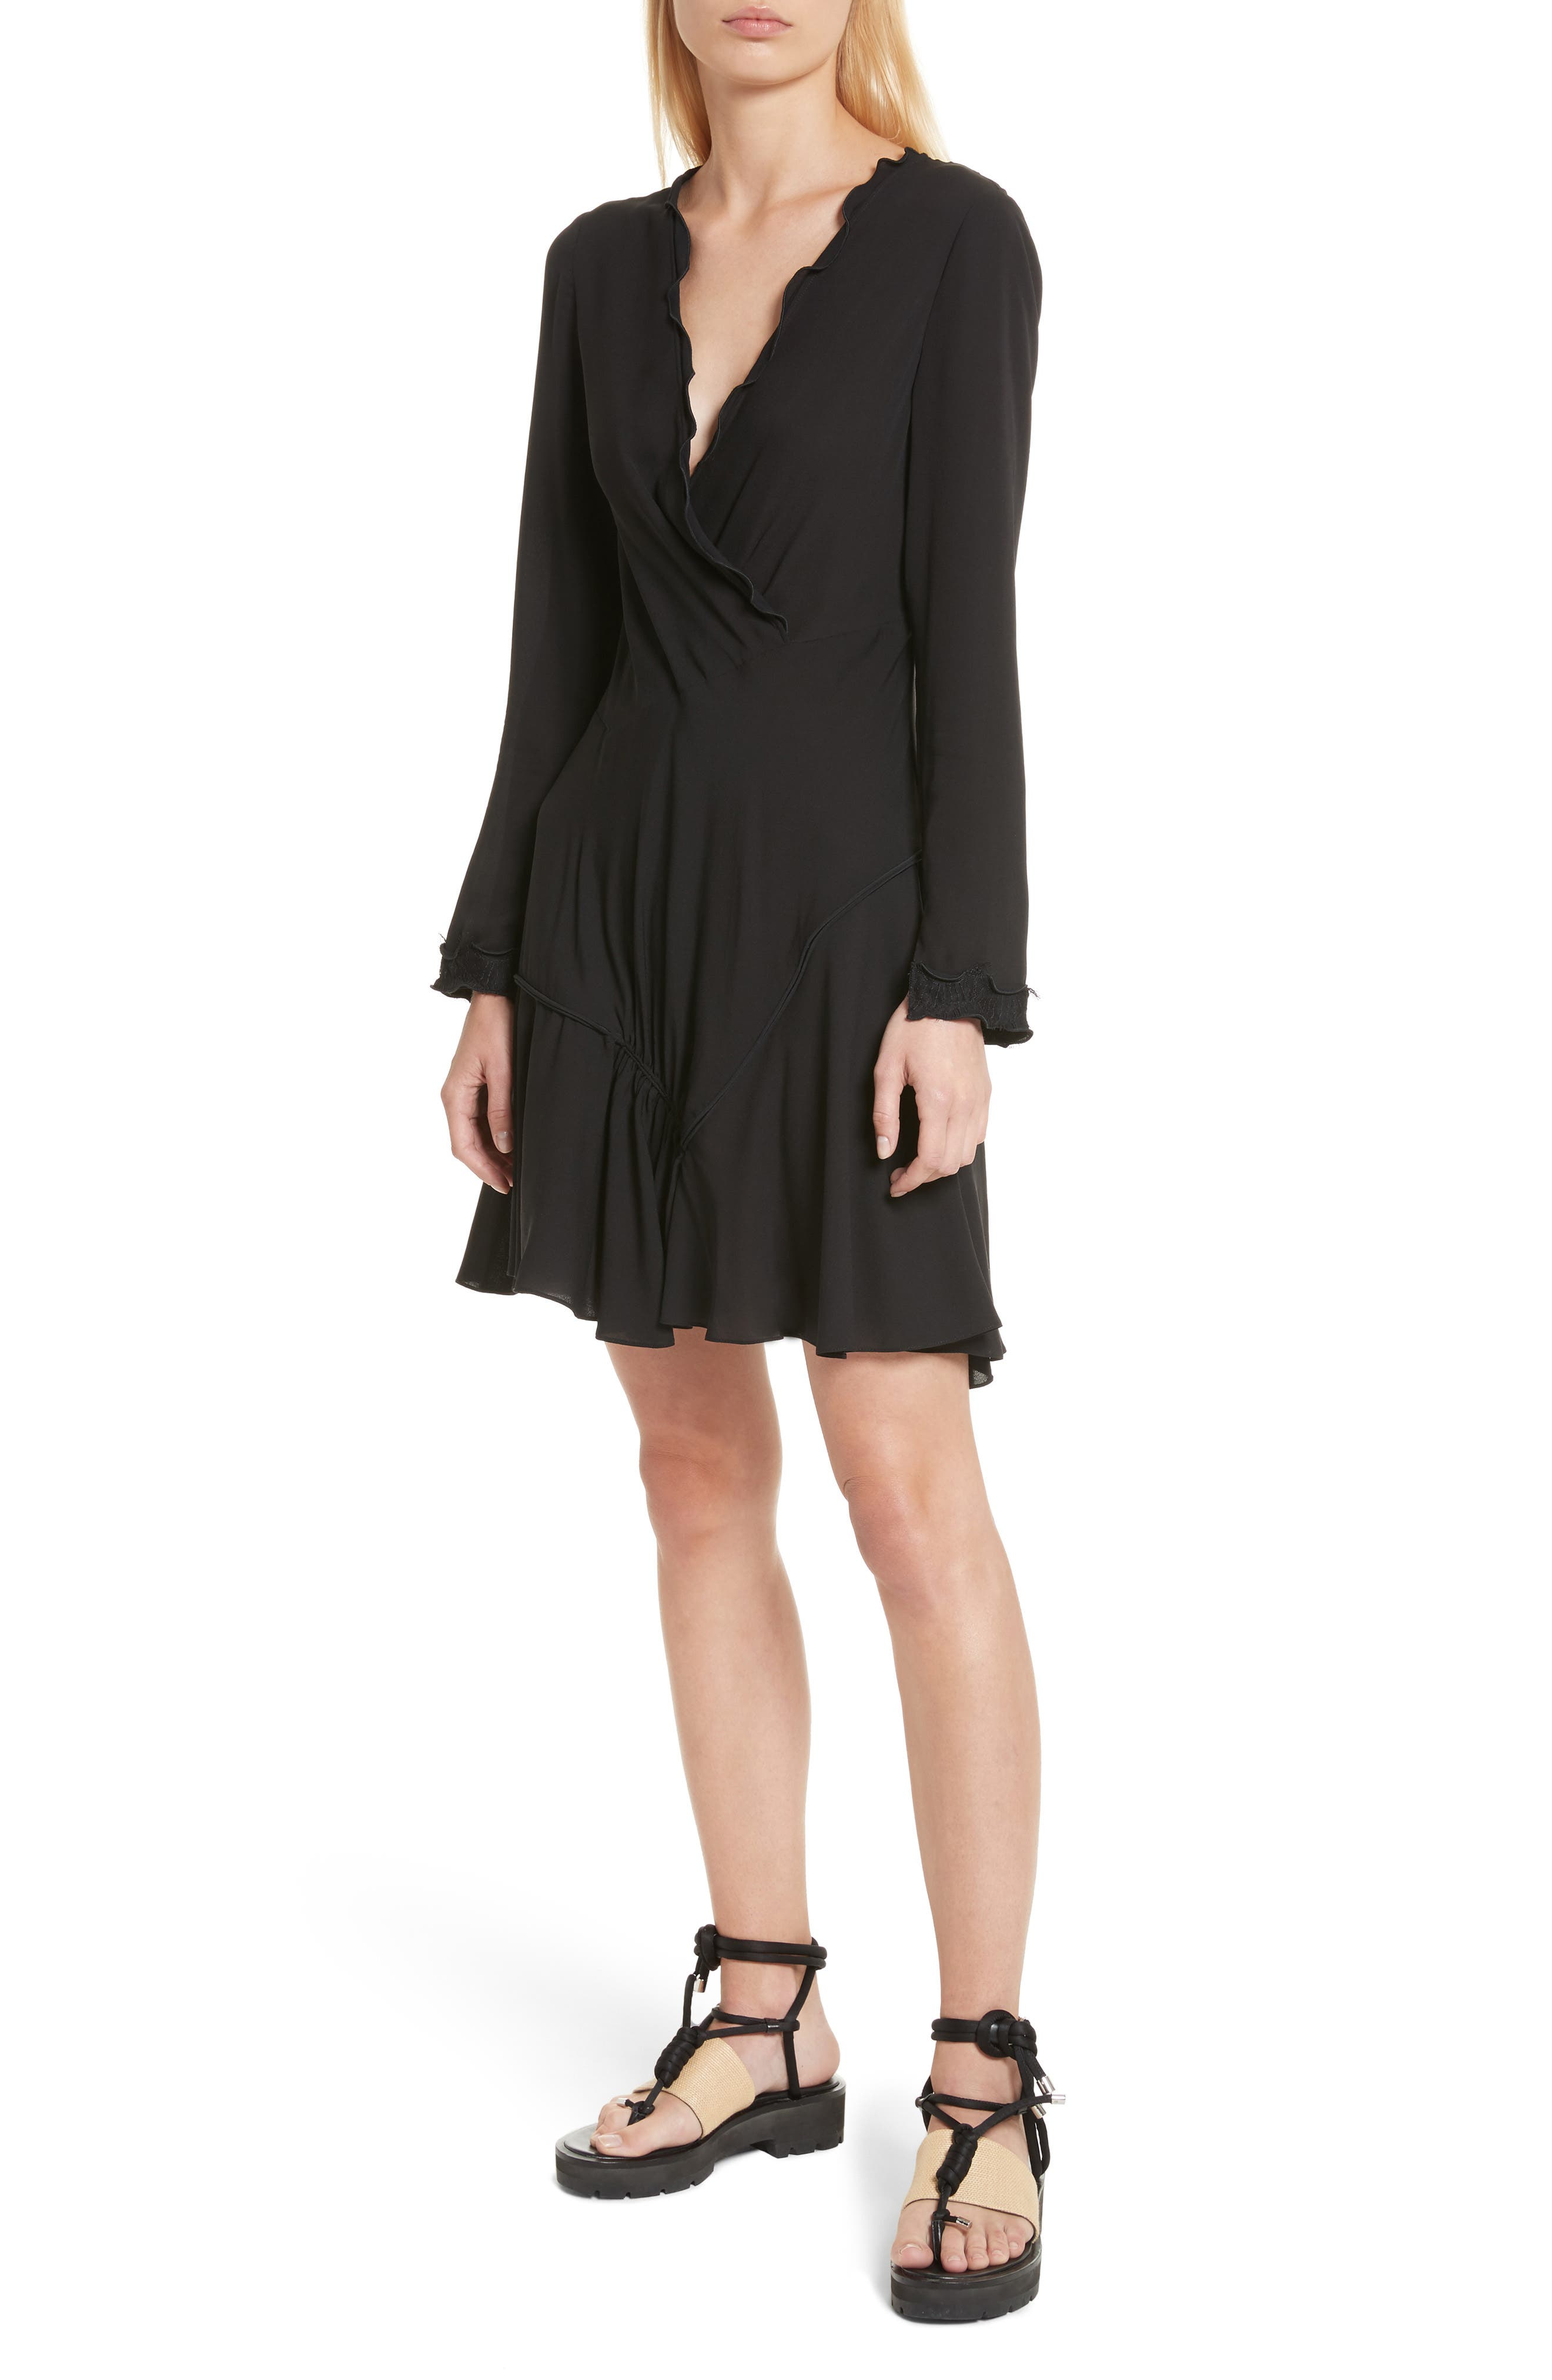 Main Image - 3.1 Phillip Lim Ruffle Edge Silk Dress